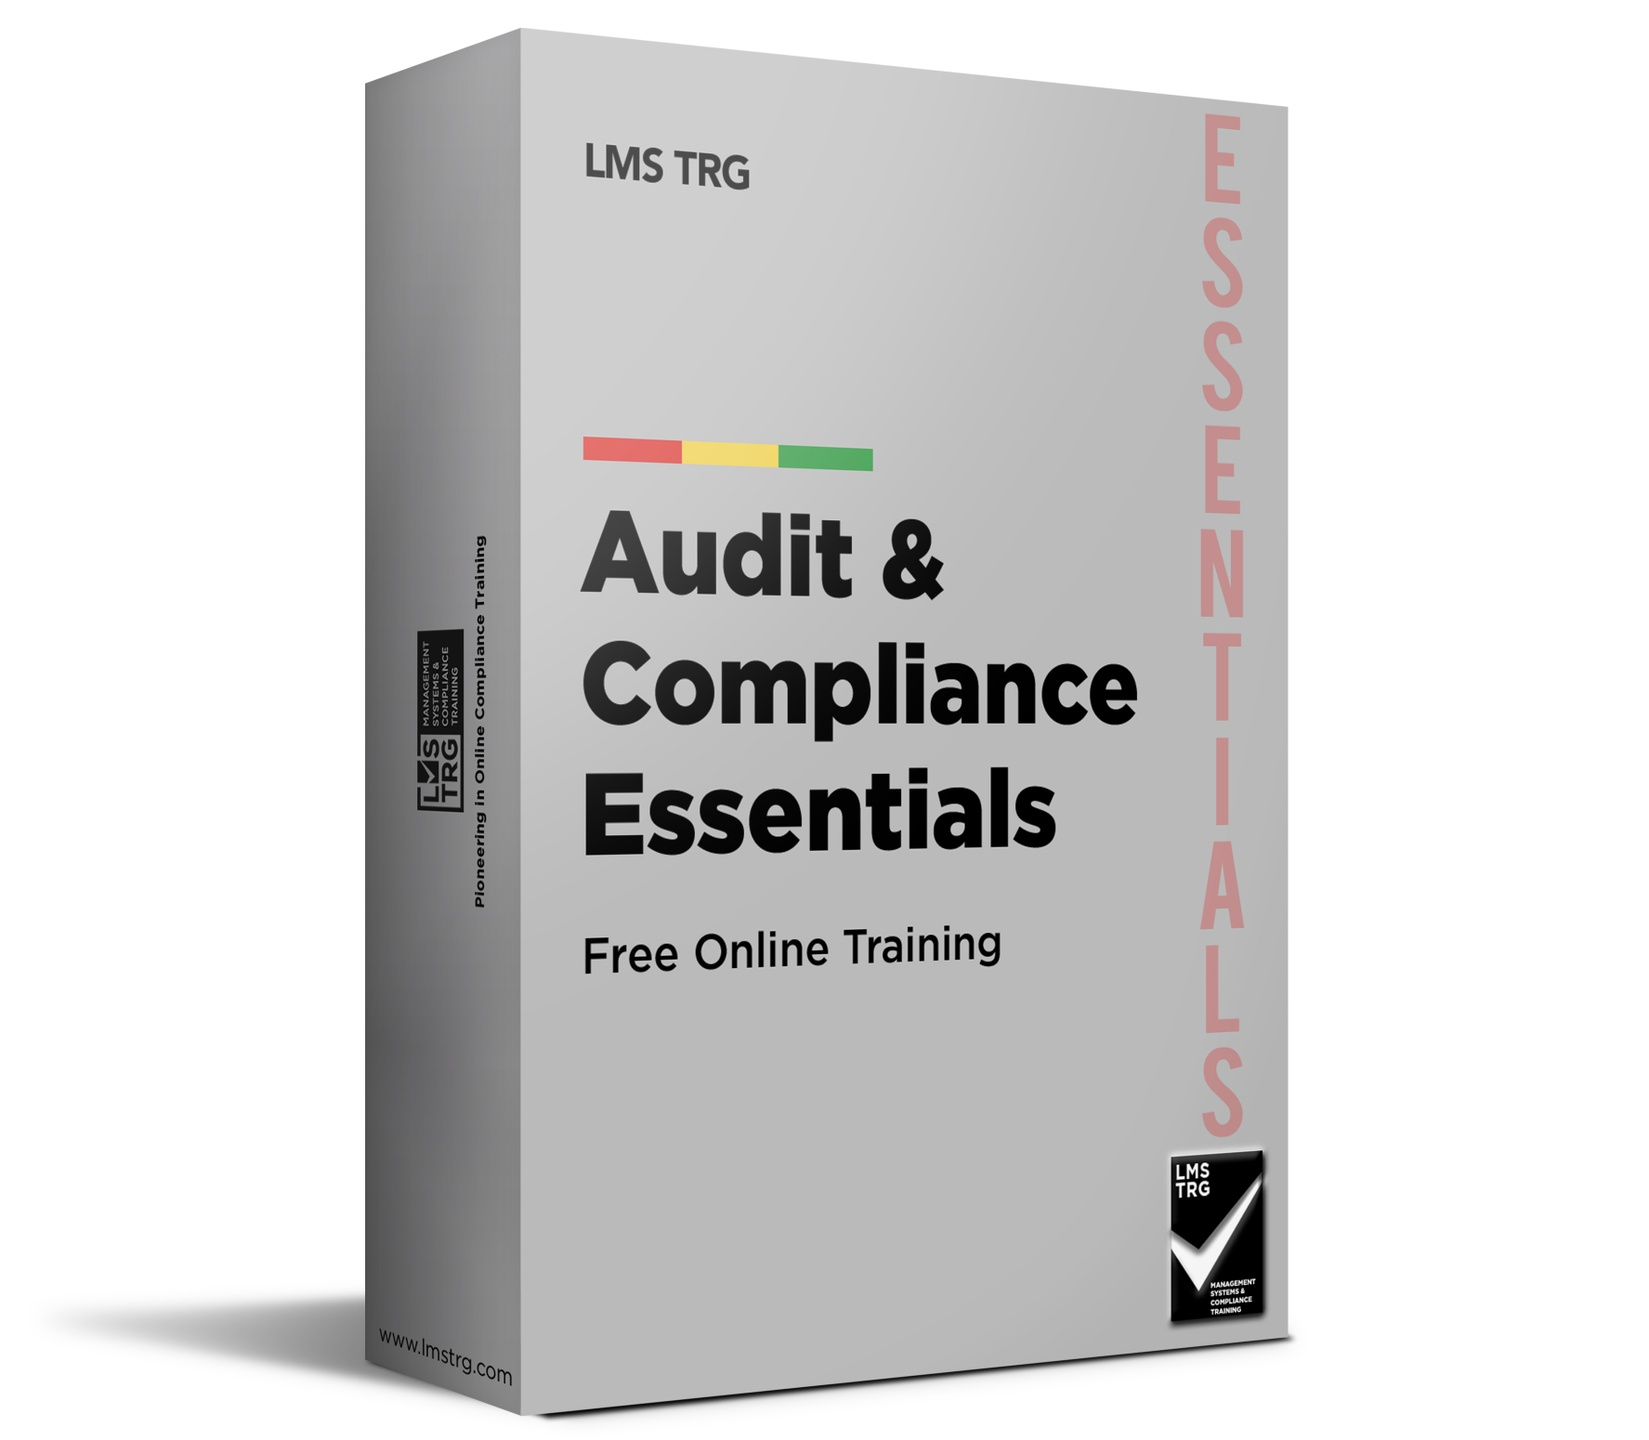 Audit and Compliance essentials